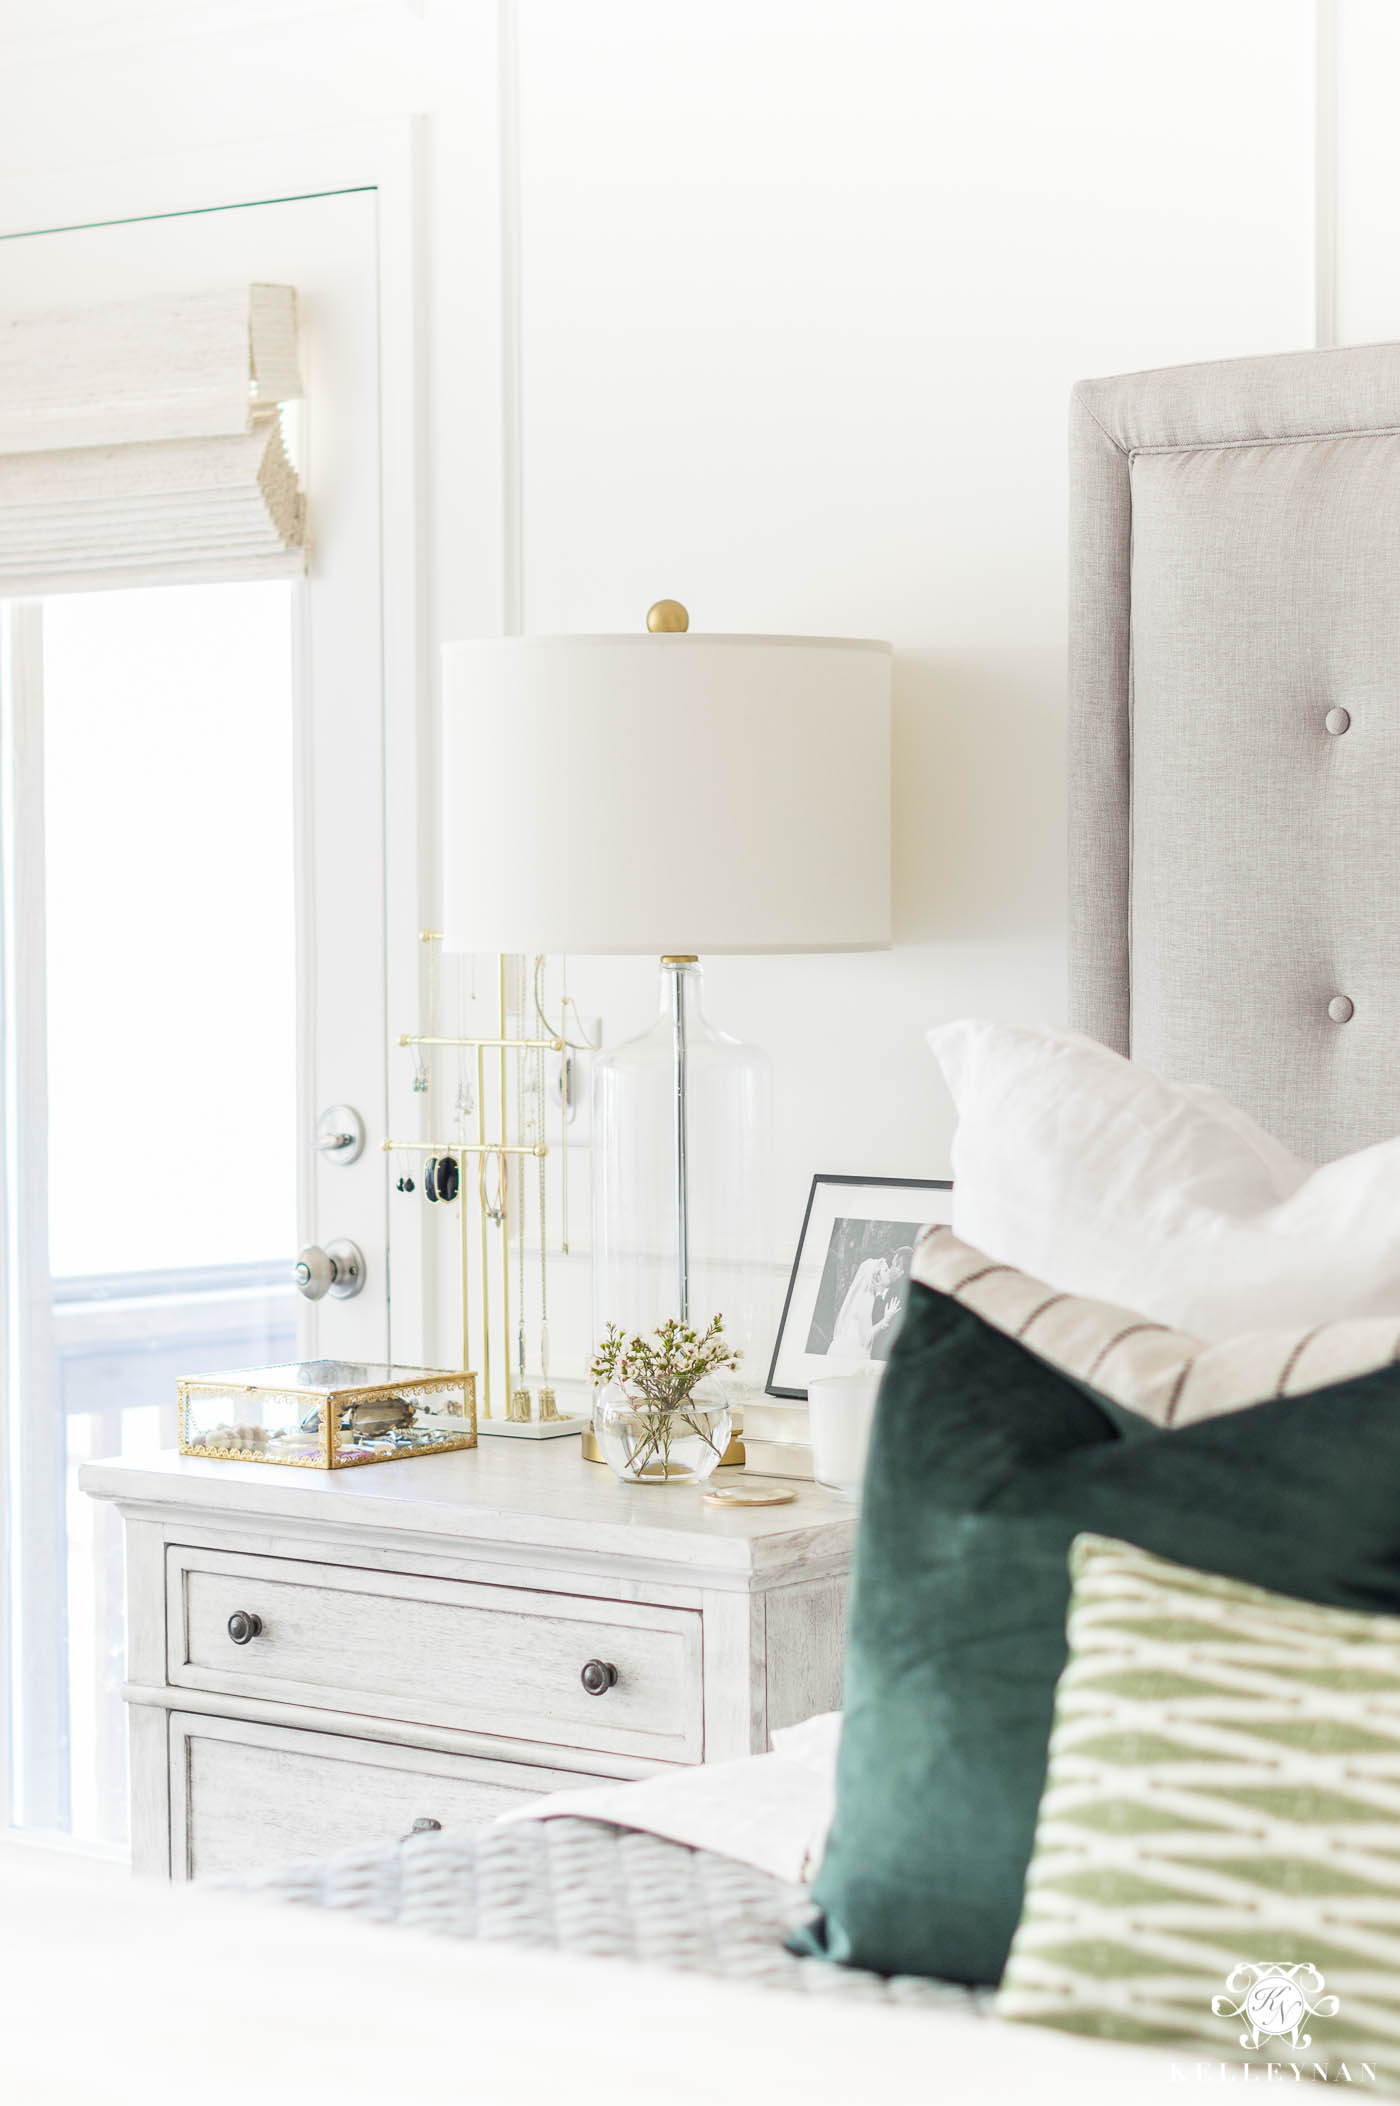 11 ways to decorate with fashion and display accessories